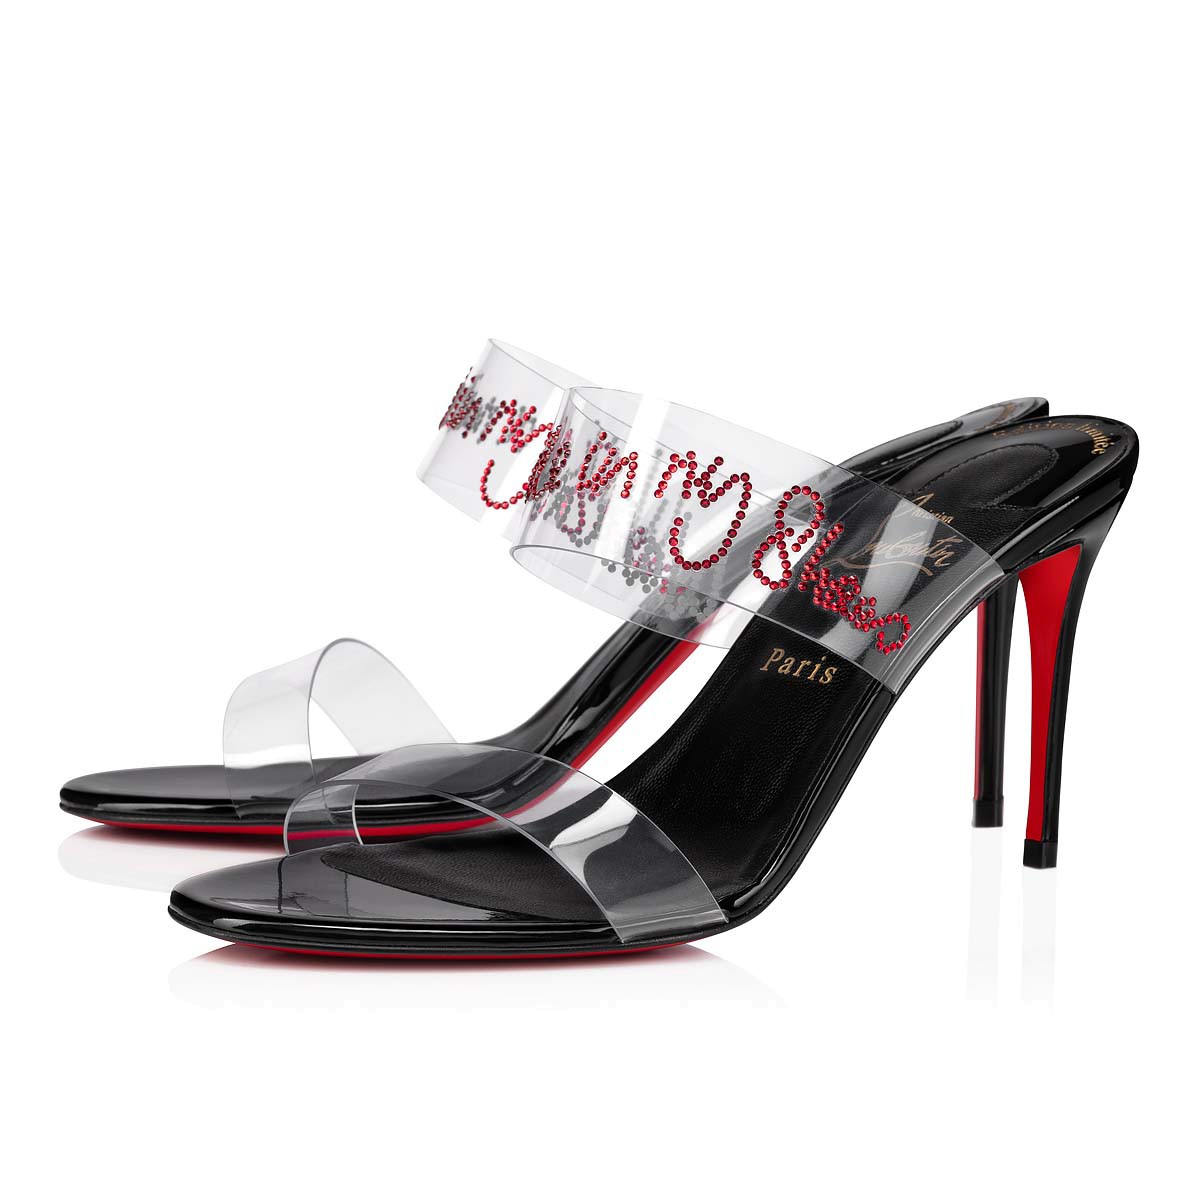 Shoes - Just Walking Strass - Christian Louboutin